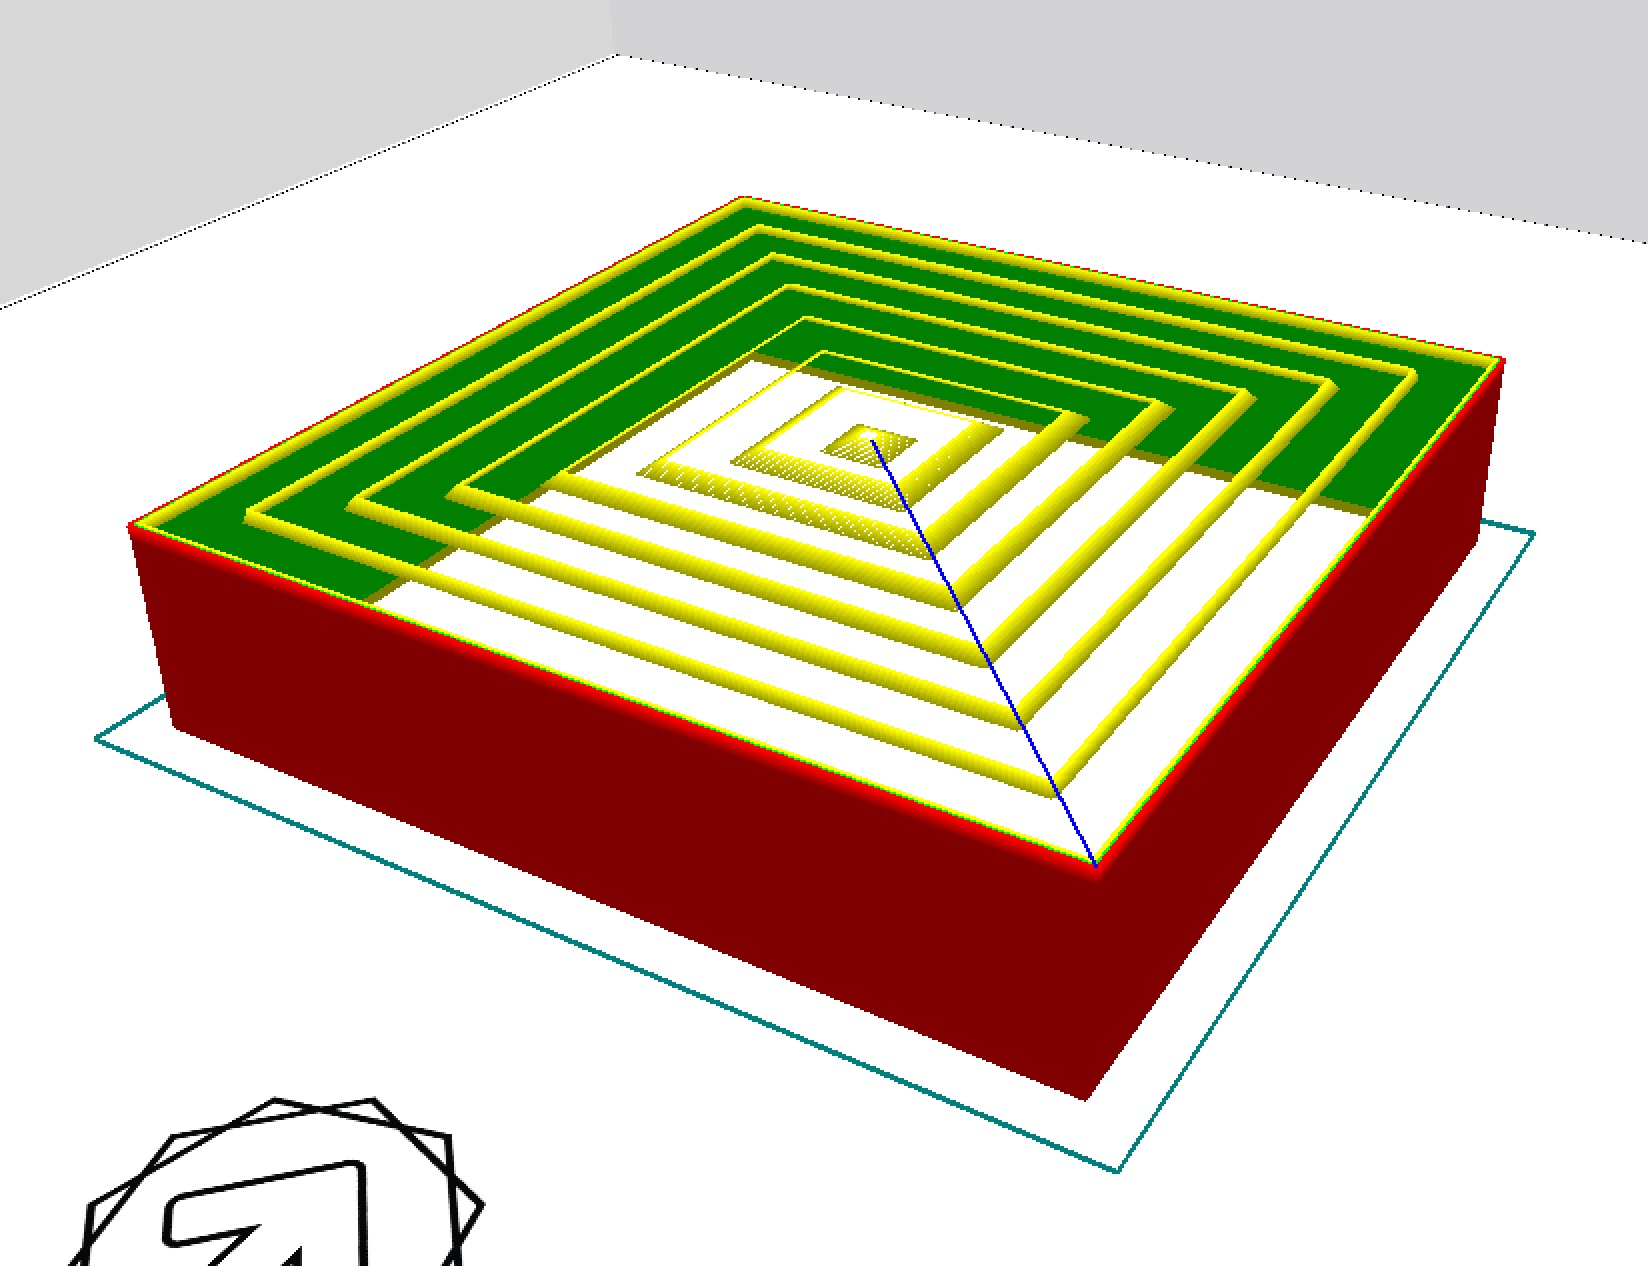 Type A Machine's CURA support generated concentric gradient